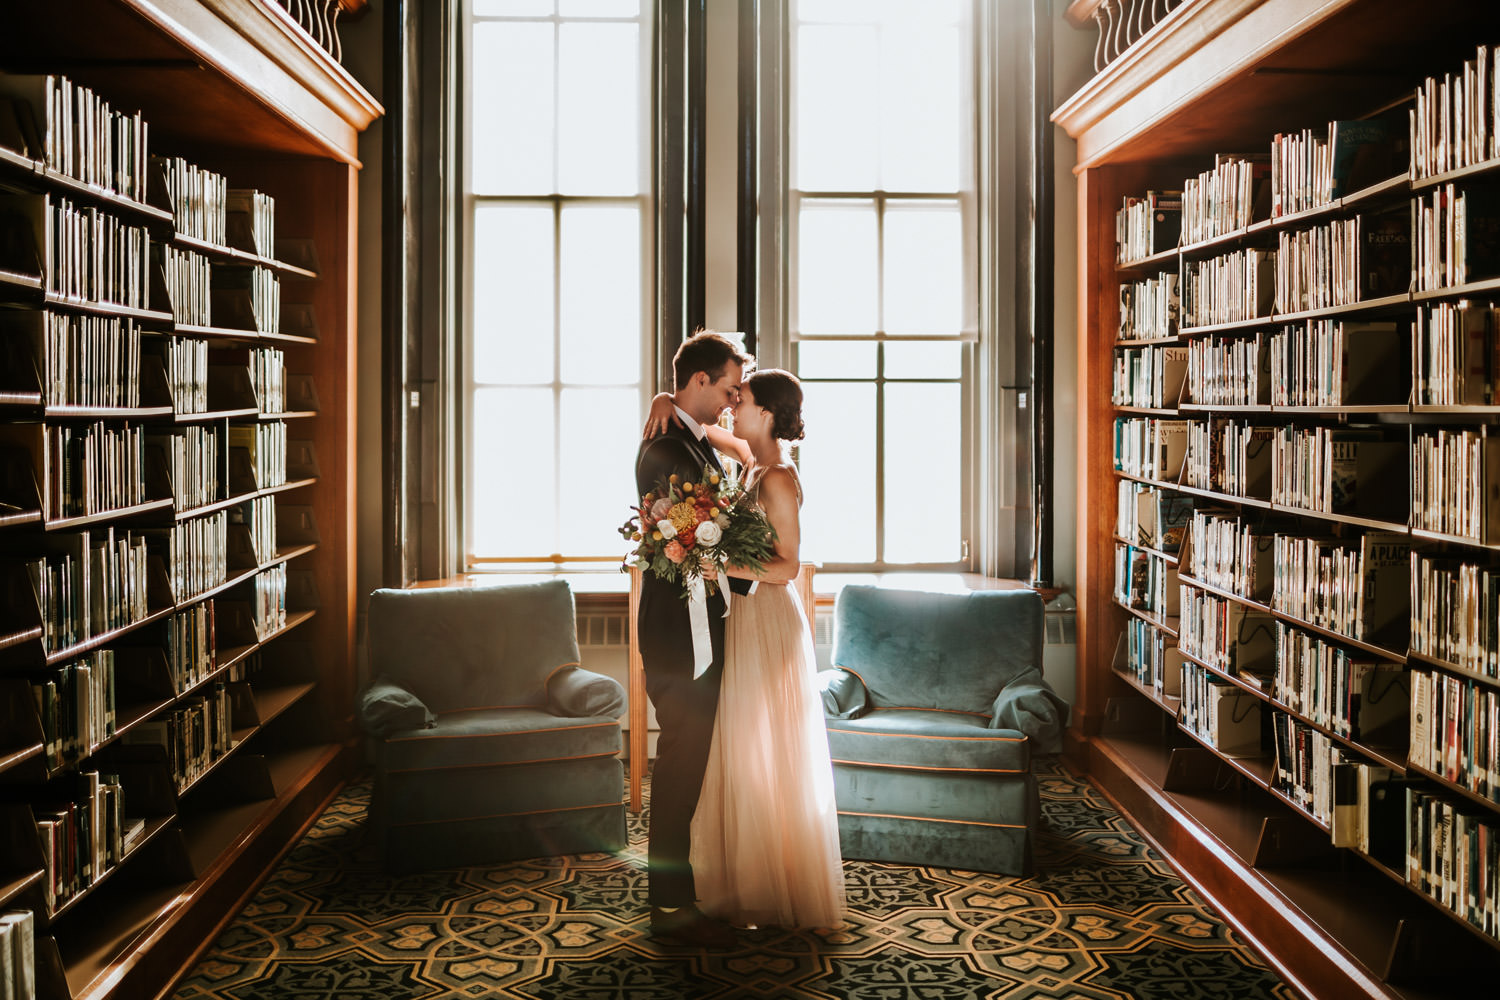 Backlit portrait of bride and groom at Saint Ignatius library. Picture taken in Chicago by Mark Trela Photography